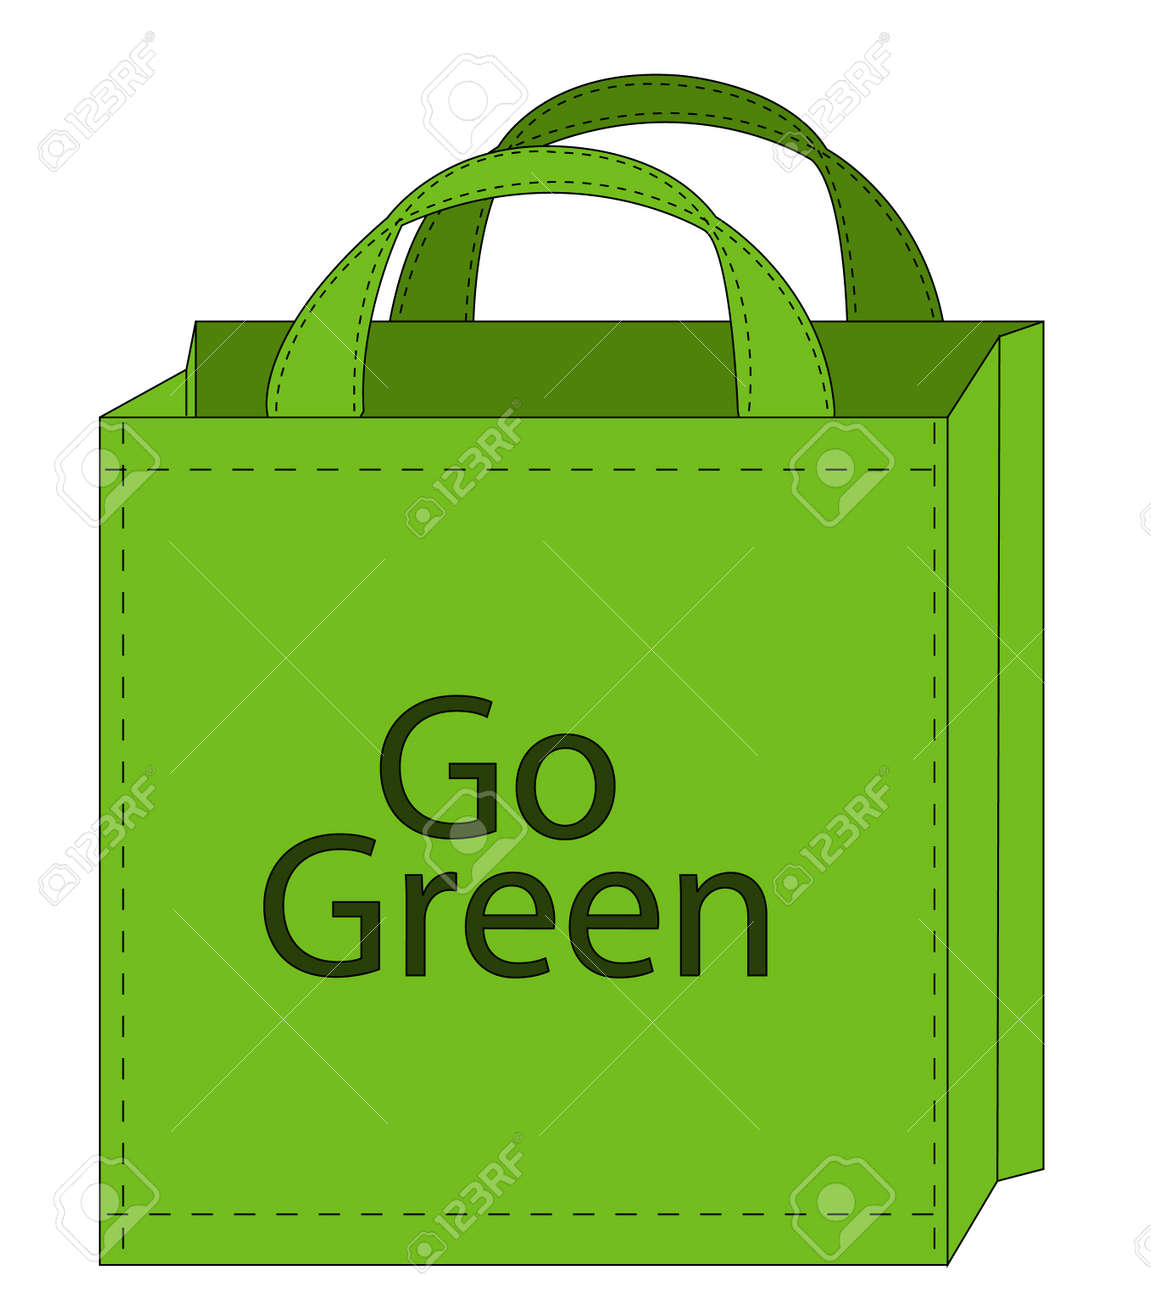 Illustration Of A Reusable Shopping Bag Encouraging Green Shopping ...